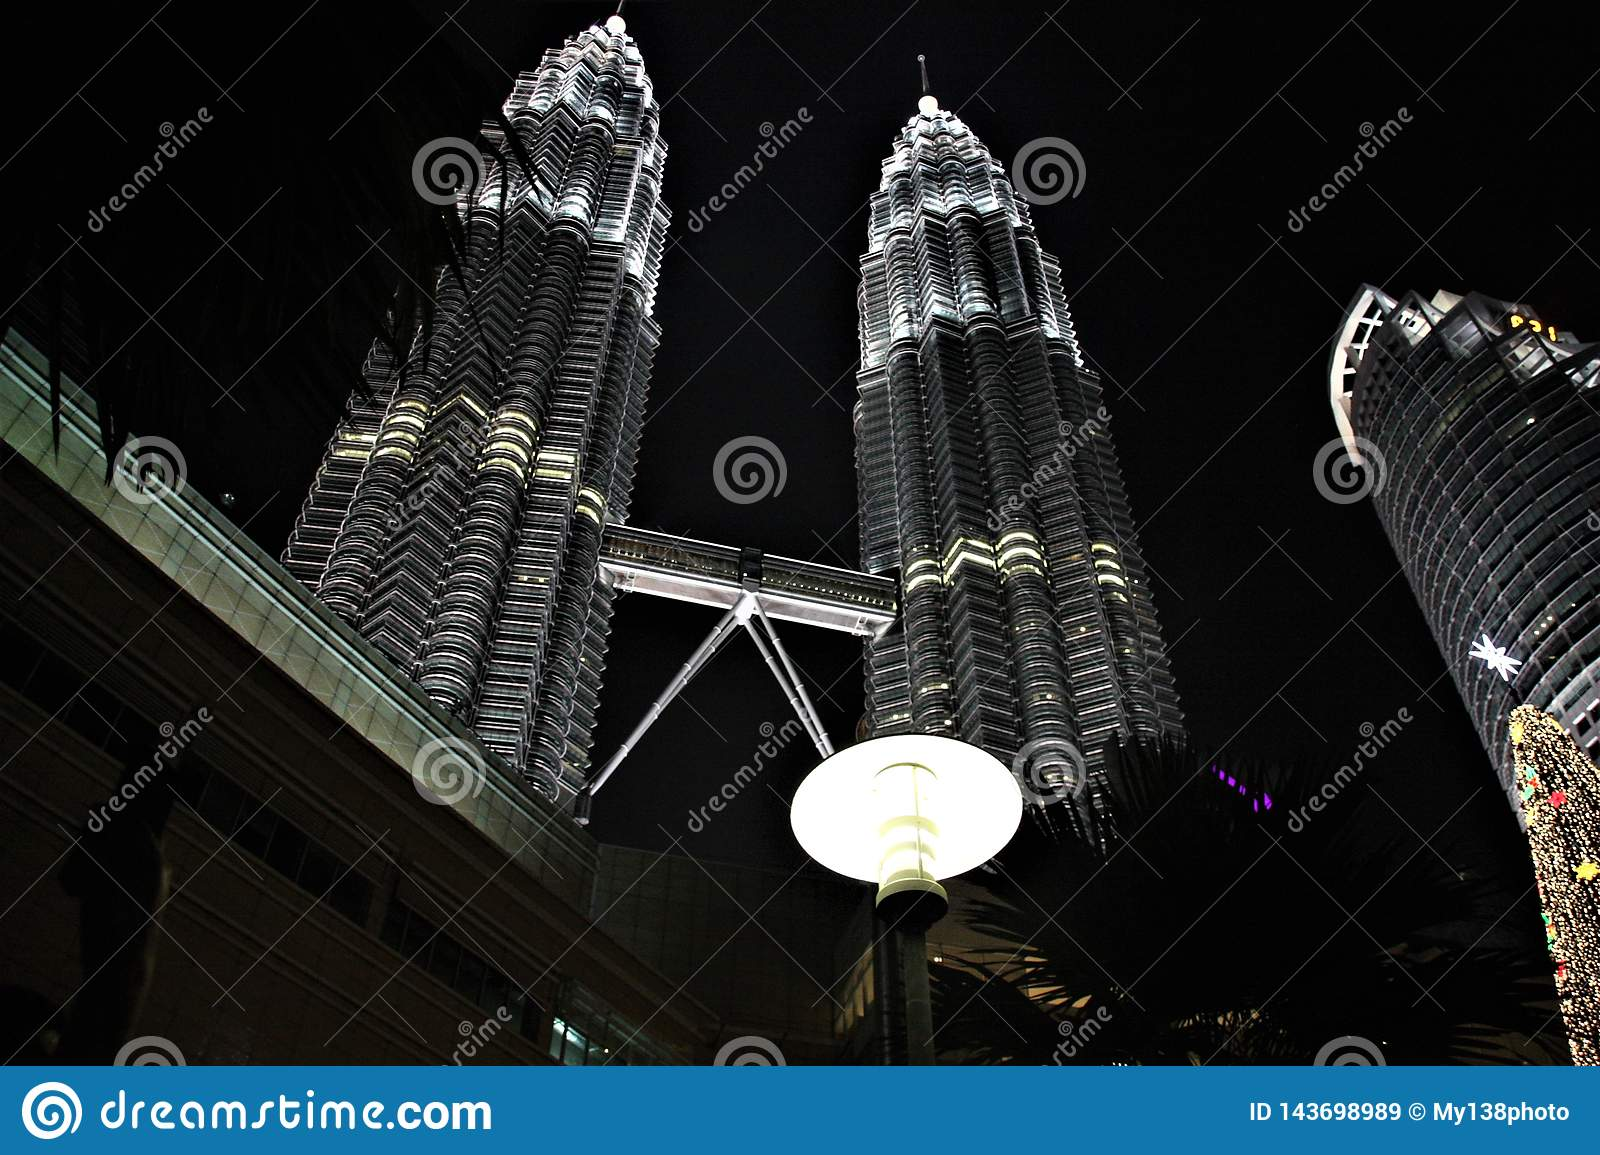 The Petronas Twin Towers at night, tallest twin towers in the world at Kuala Lumpur Malaysia